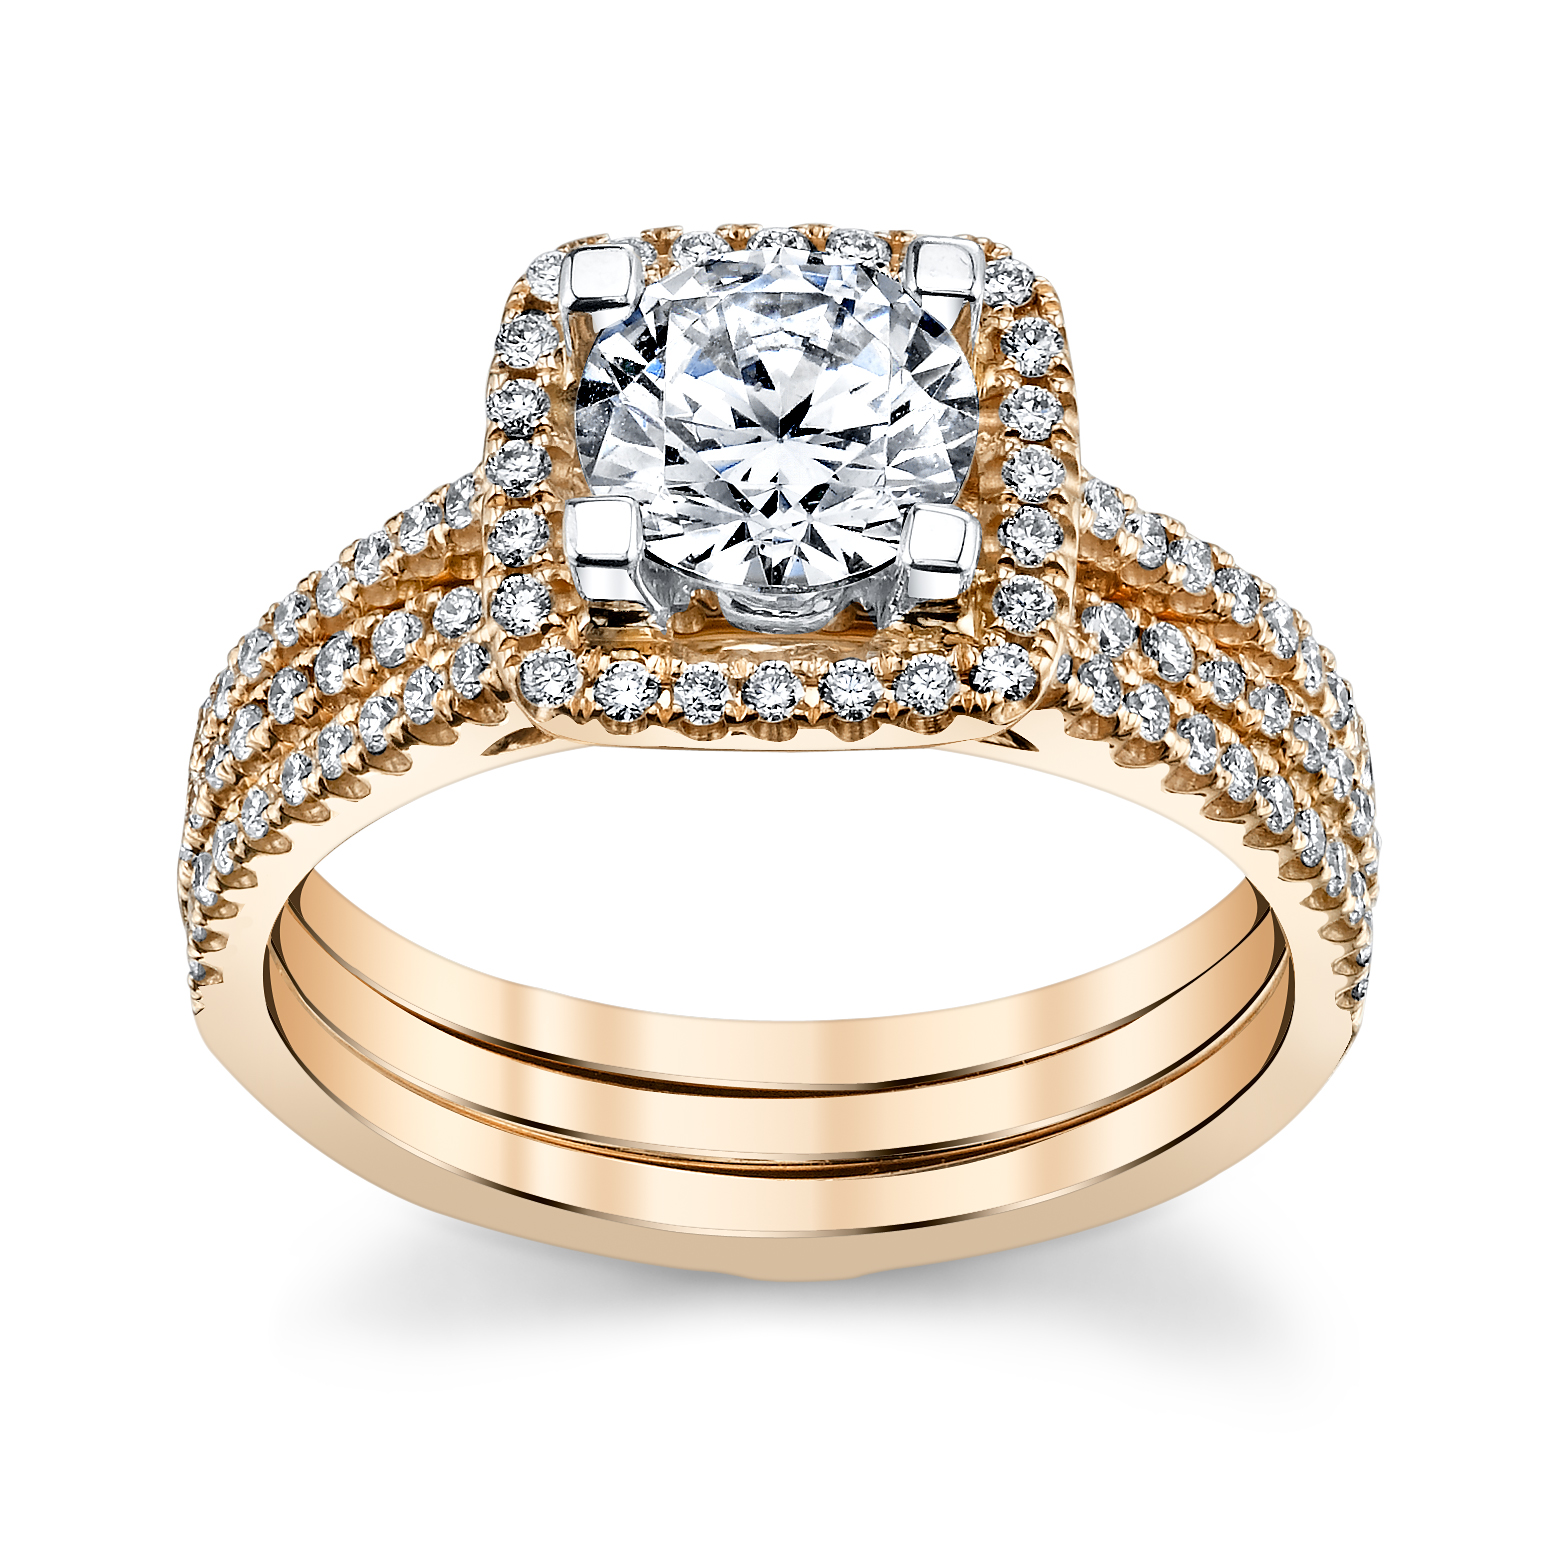 kay gold diamond rings the available leo sets engagement elegant set jewelers white tolkowsky bridal of wedding in